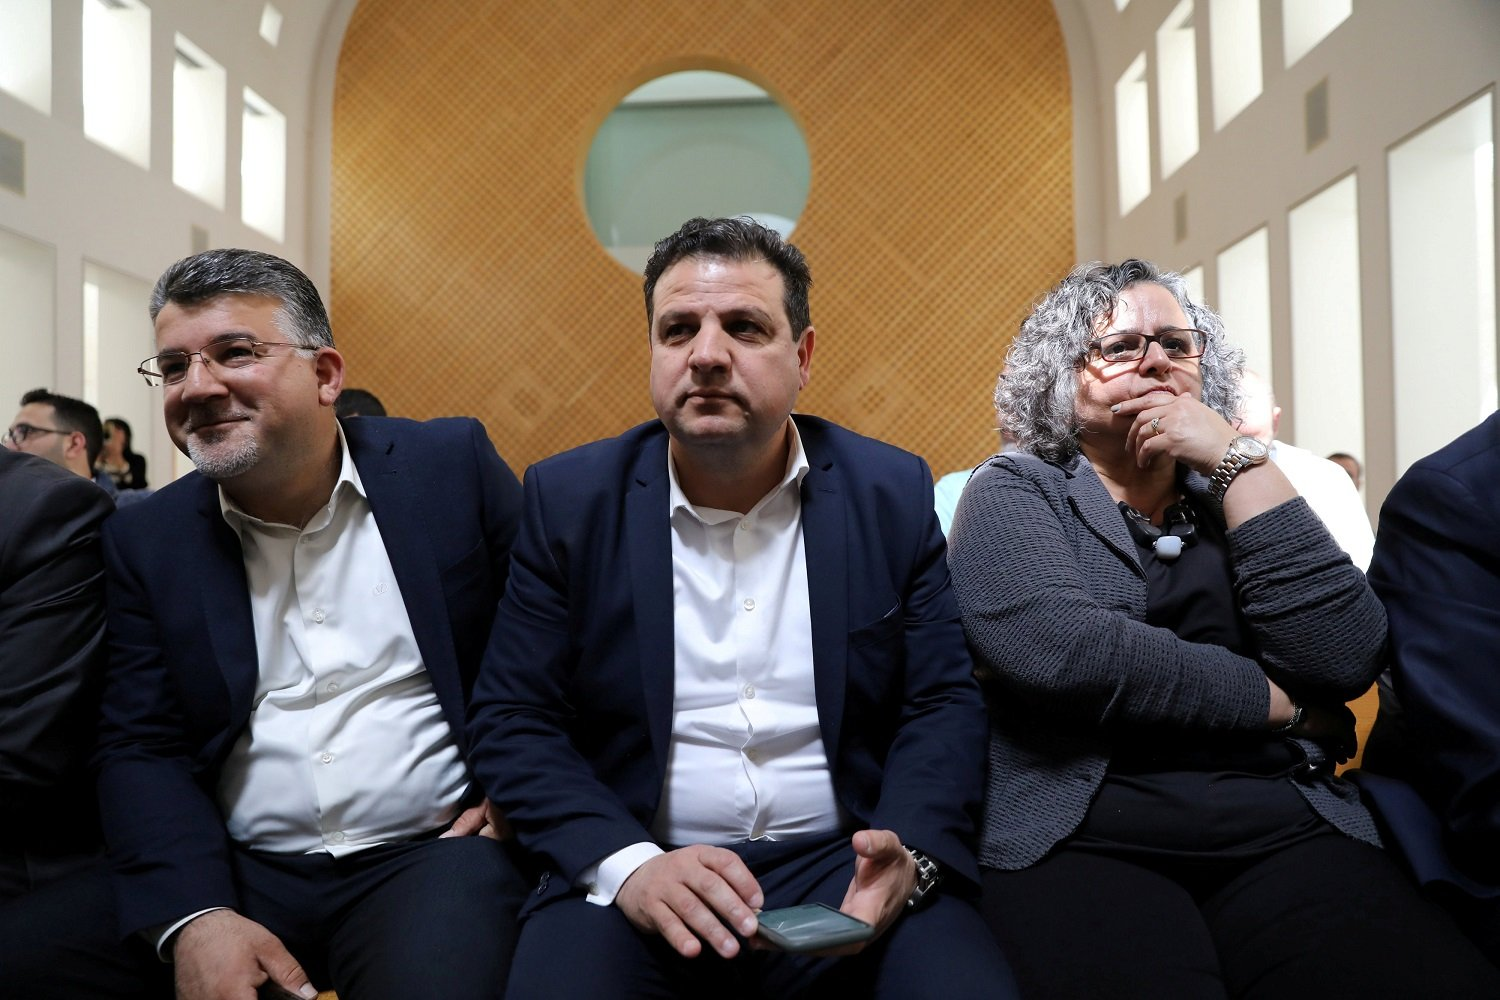 Ayman Odeh, centre, attends a hearing at Israel's Supreme Court in Jerusalem in March 2019 (Reuters)